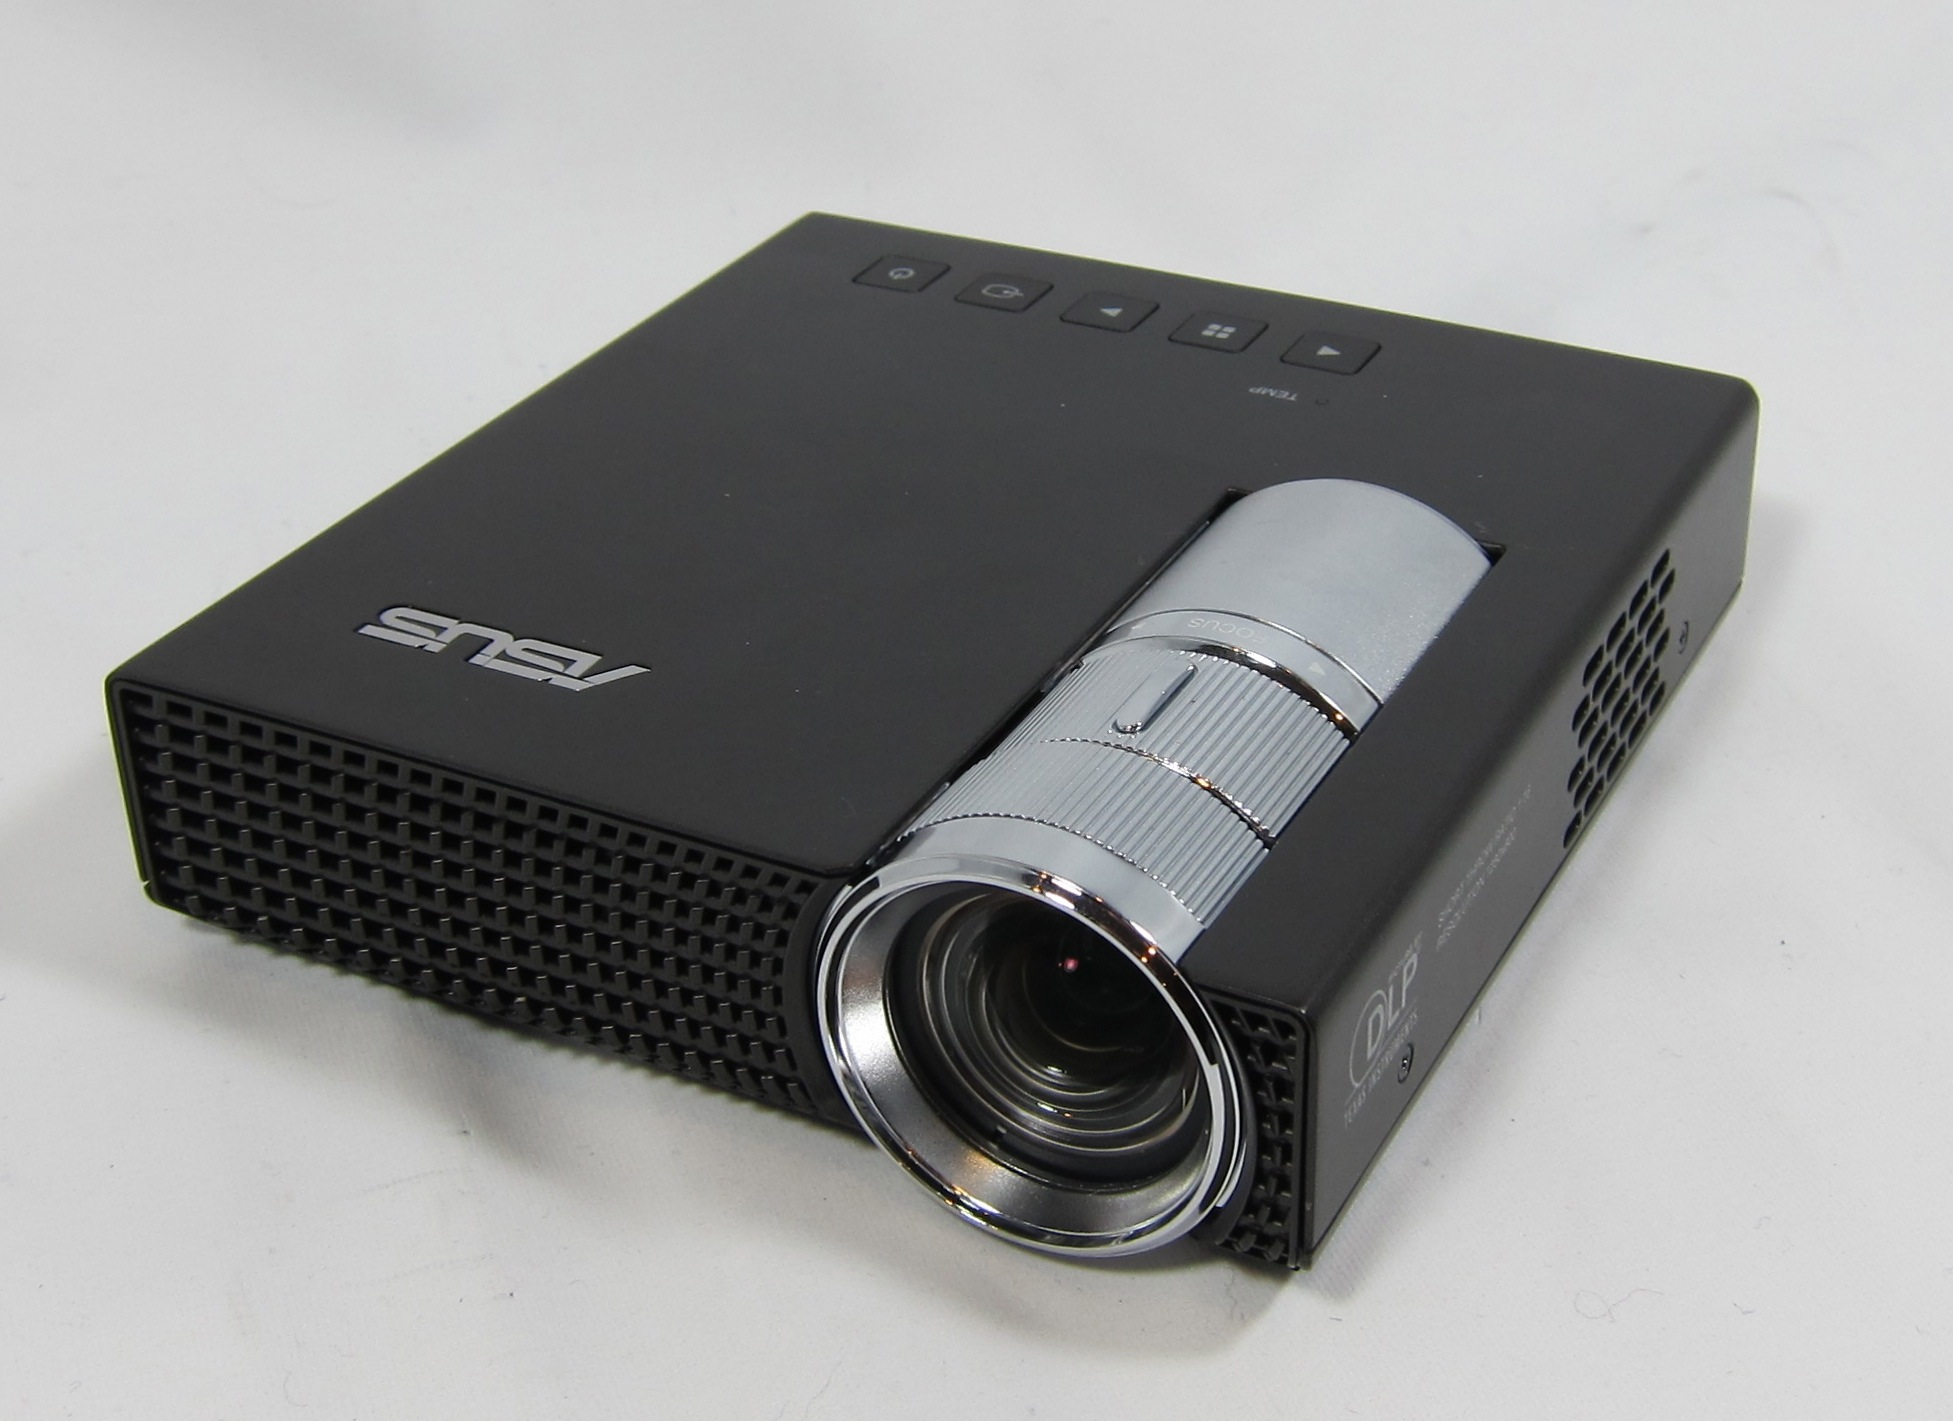 Portable projector bing images for Best portable projector